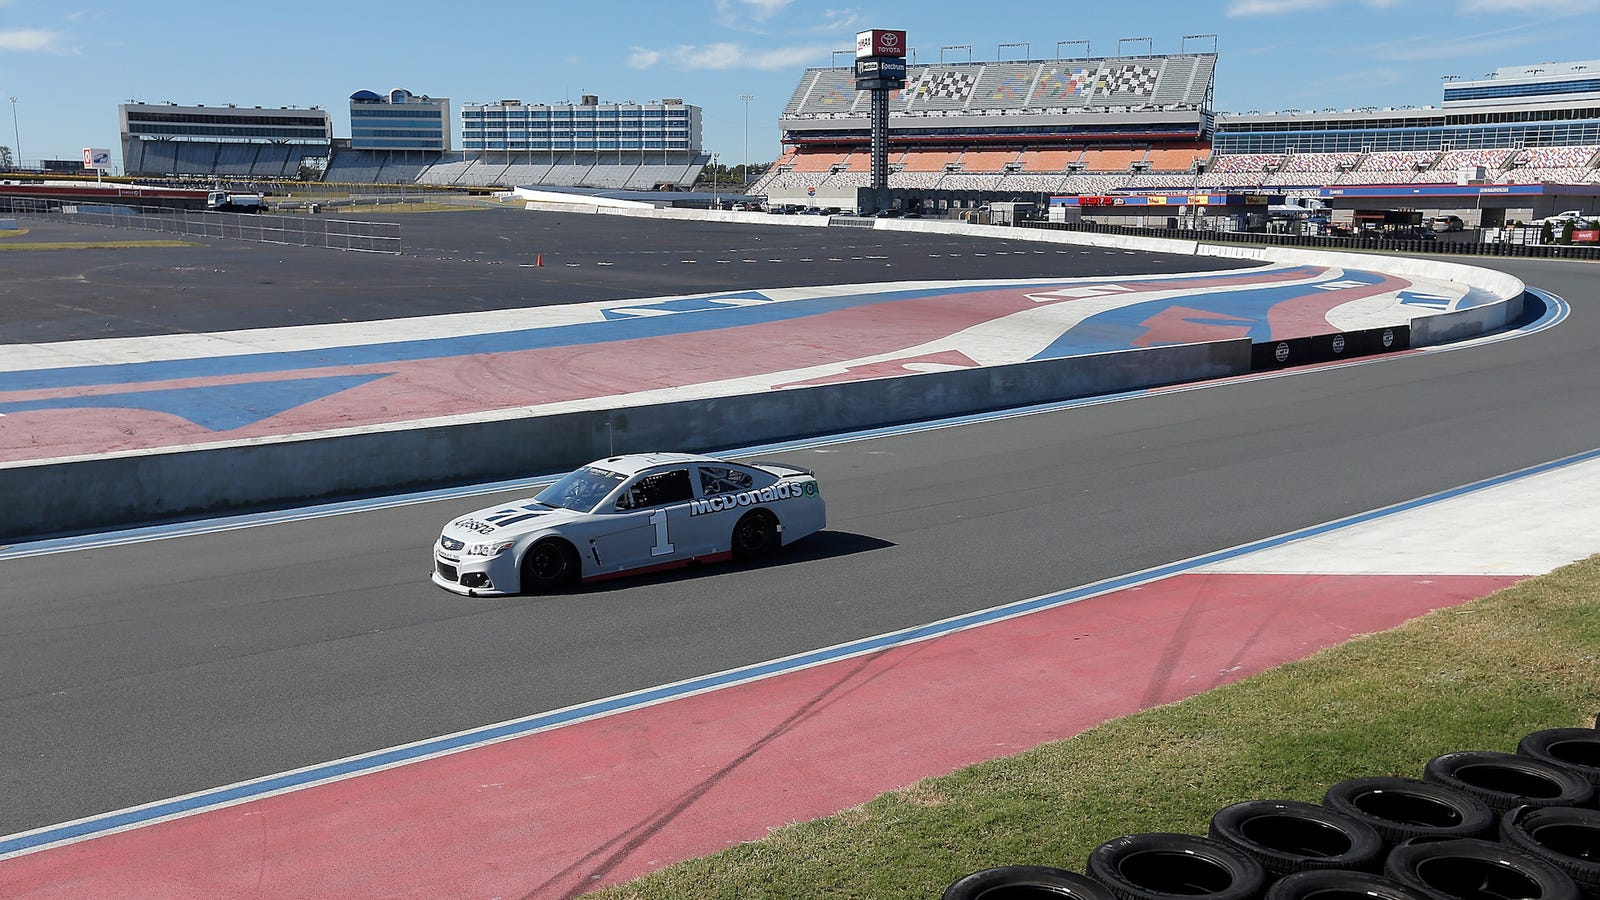 NASCAR Drivers Don't Know What To Think About This Road Course-Oval Track Layout